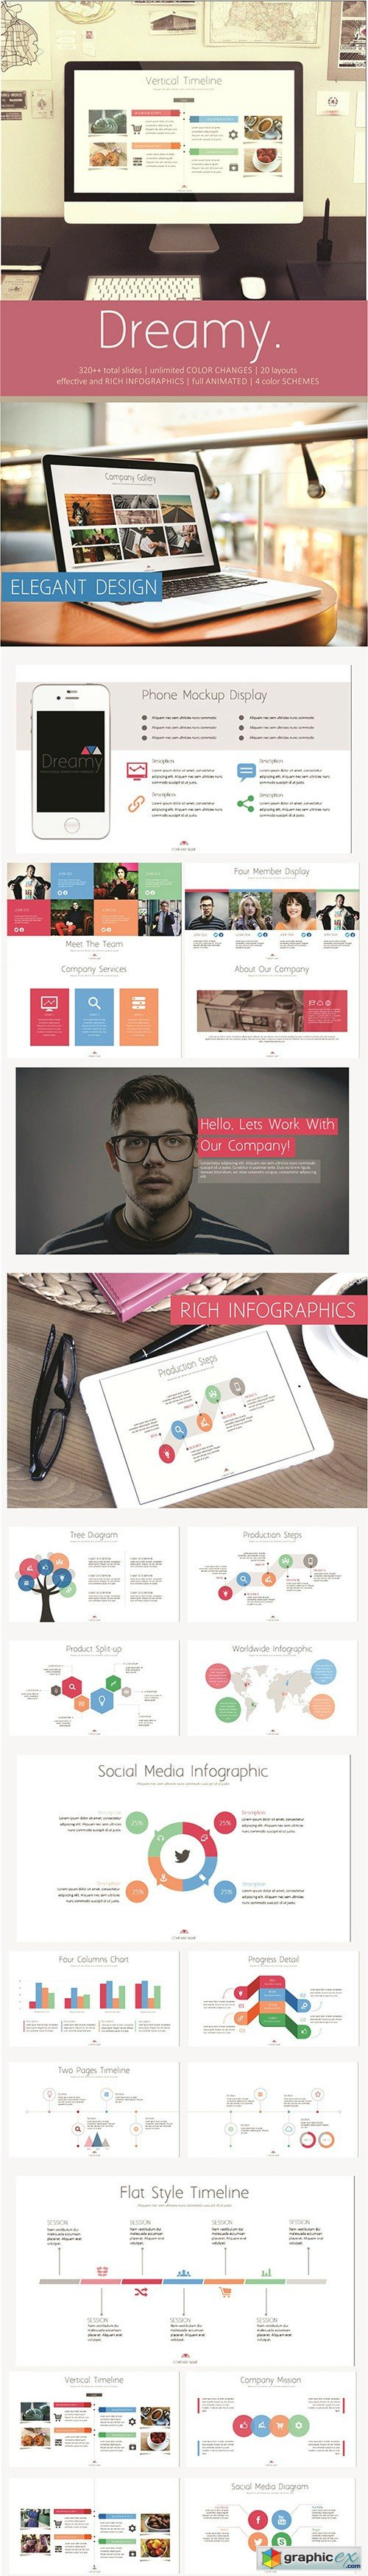 Dreamy PowerPoint Template